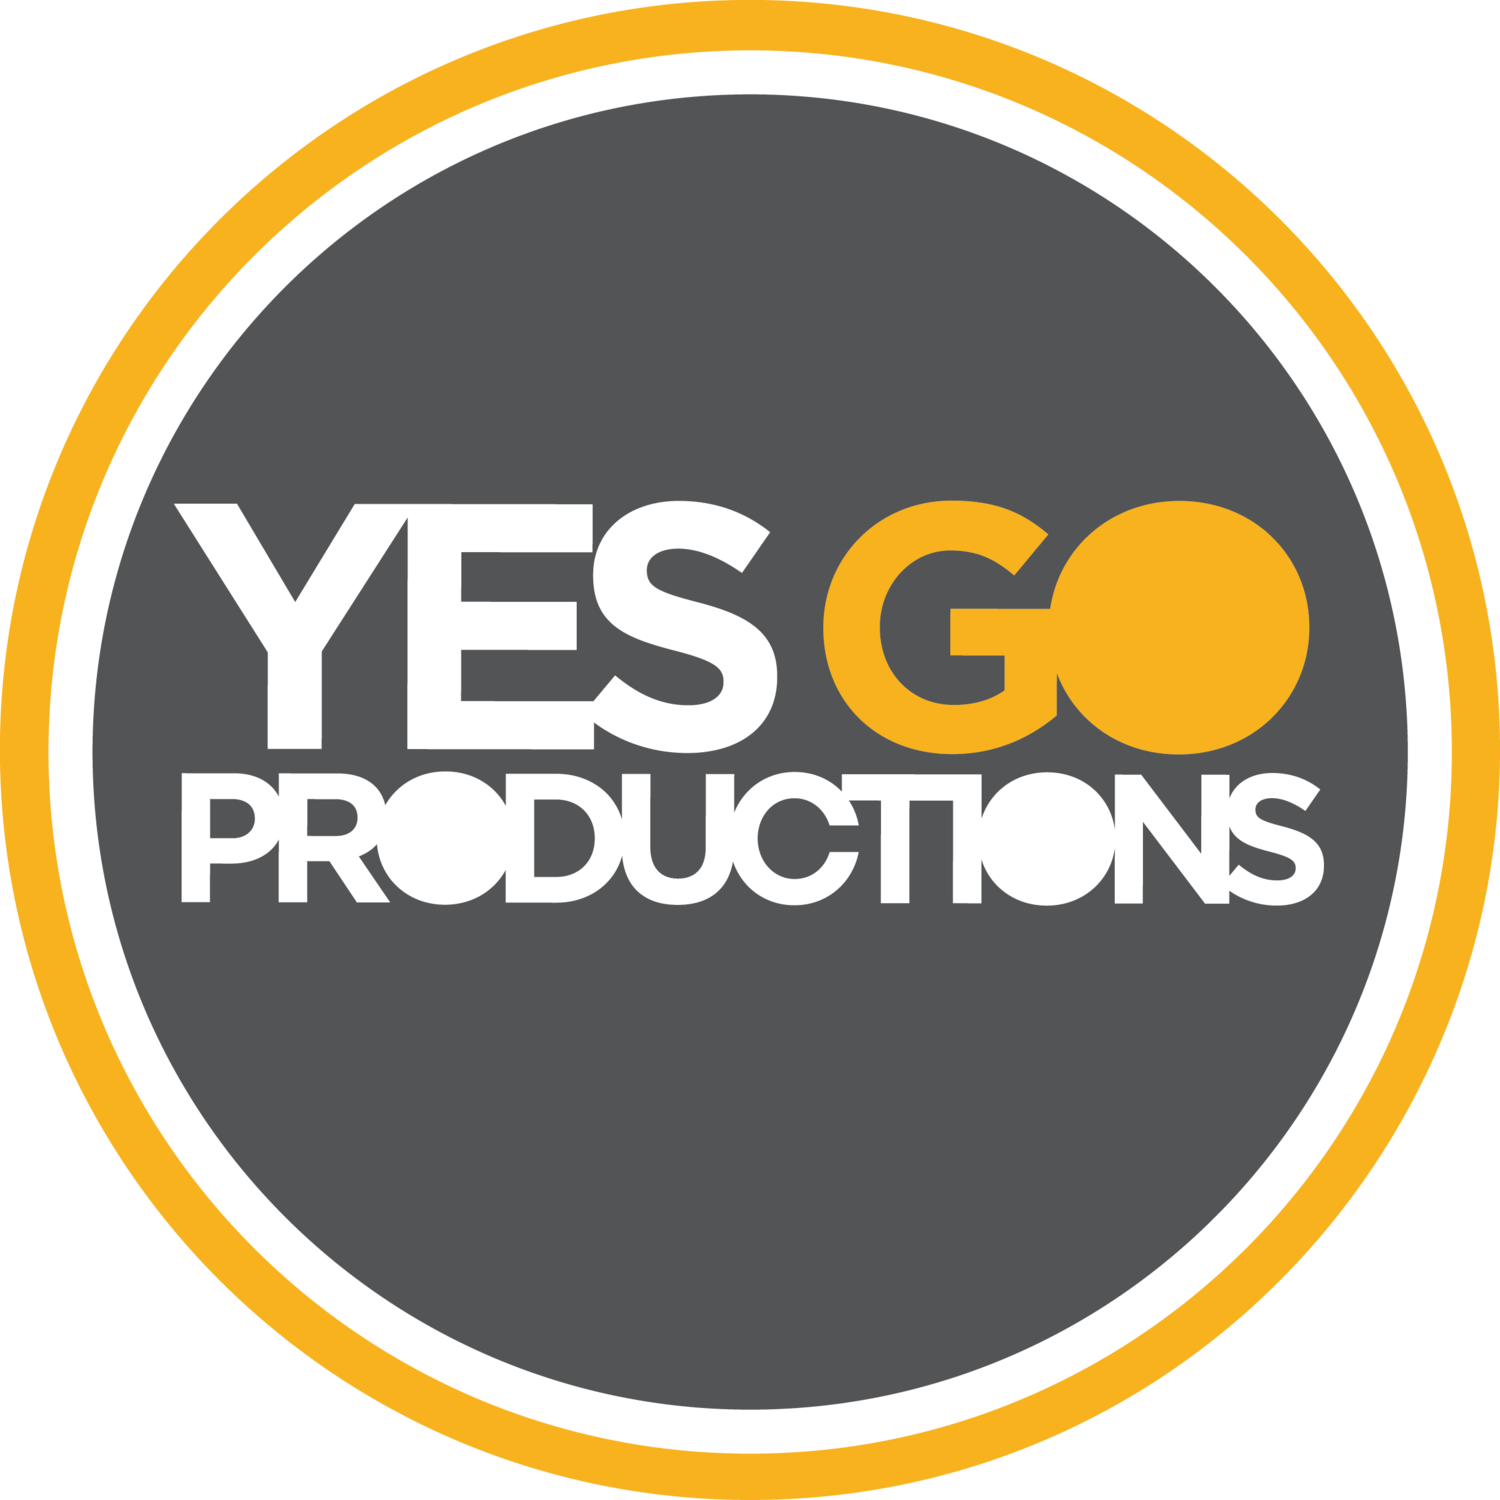 Yes Go Productions